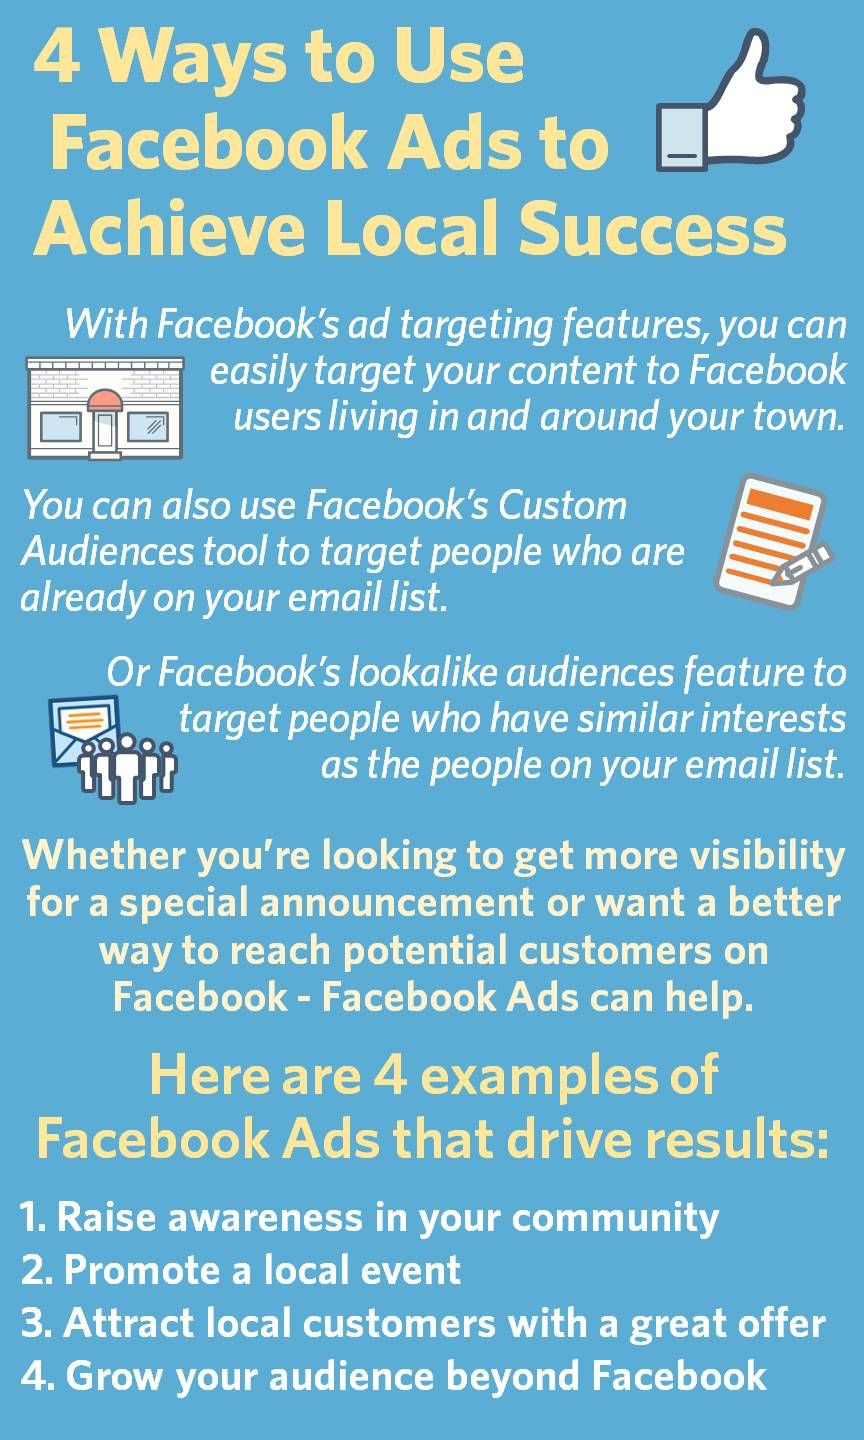 4 Ways To Use Facebook Ads To Achieve Local Success With Images